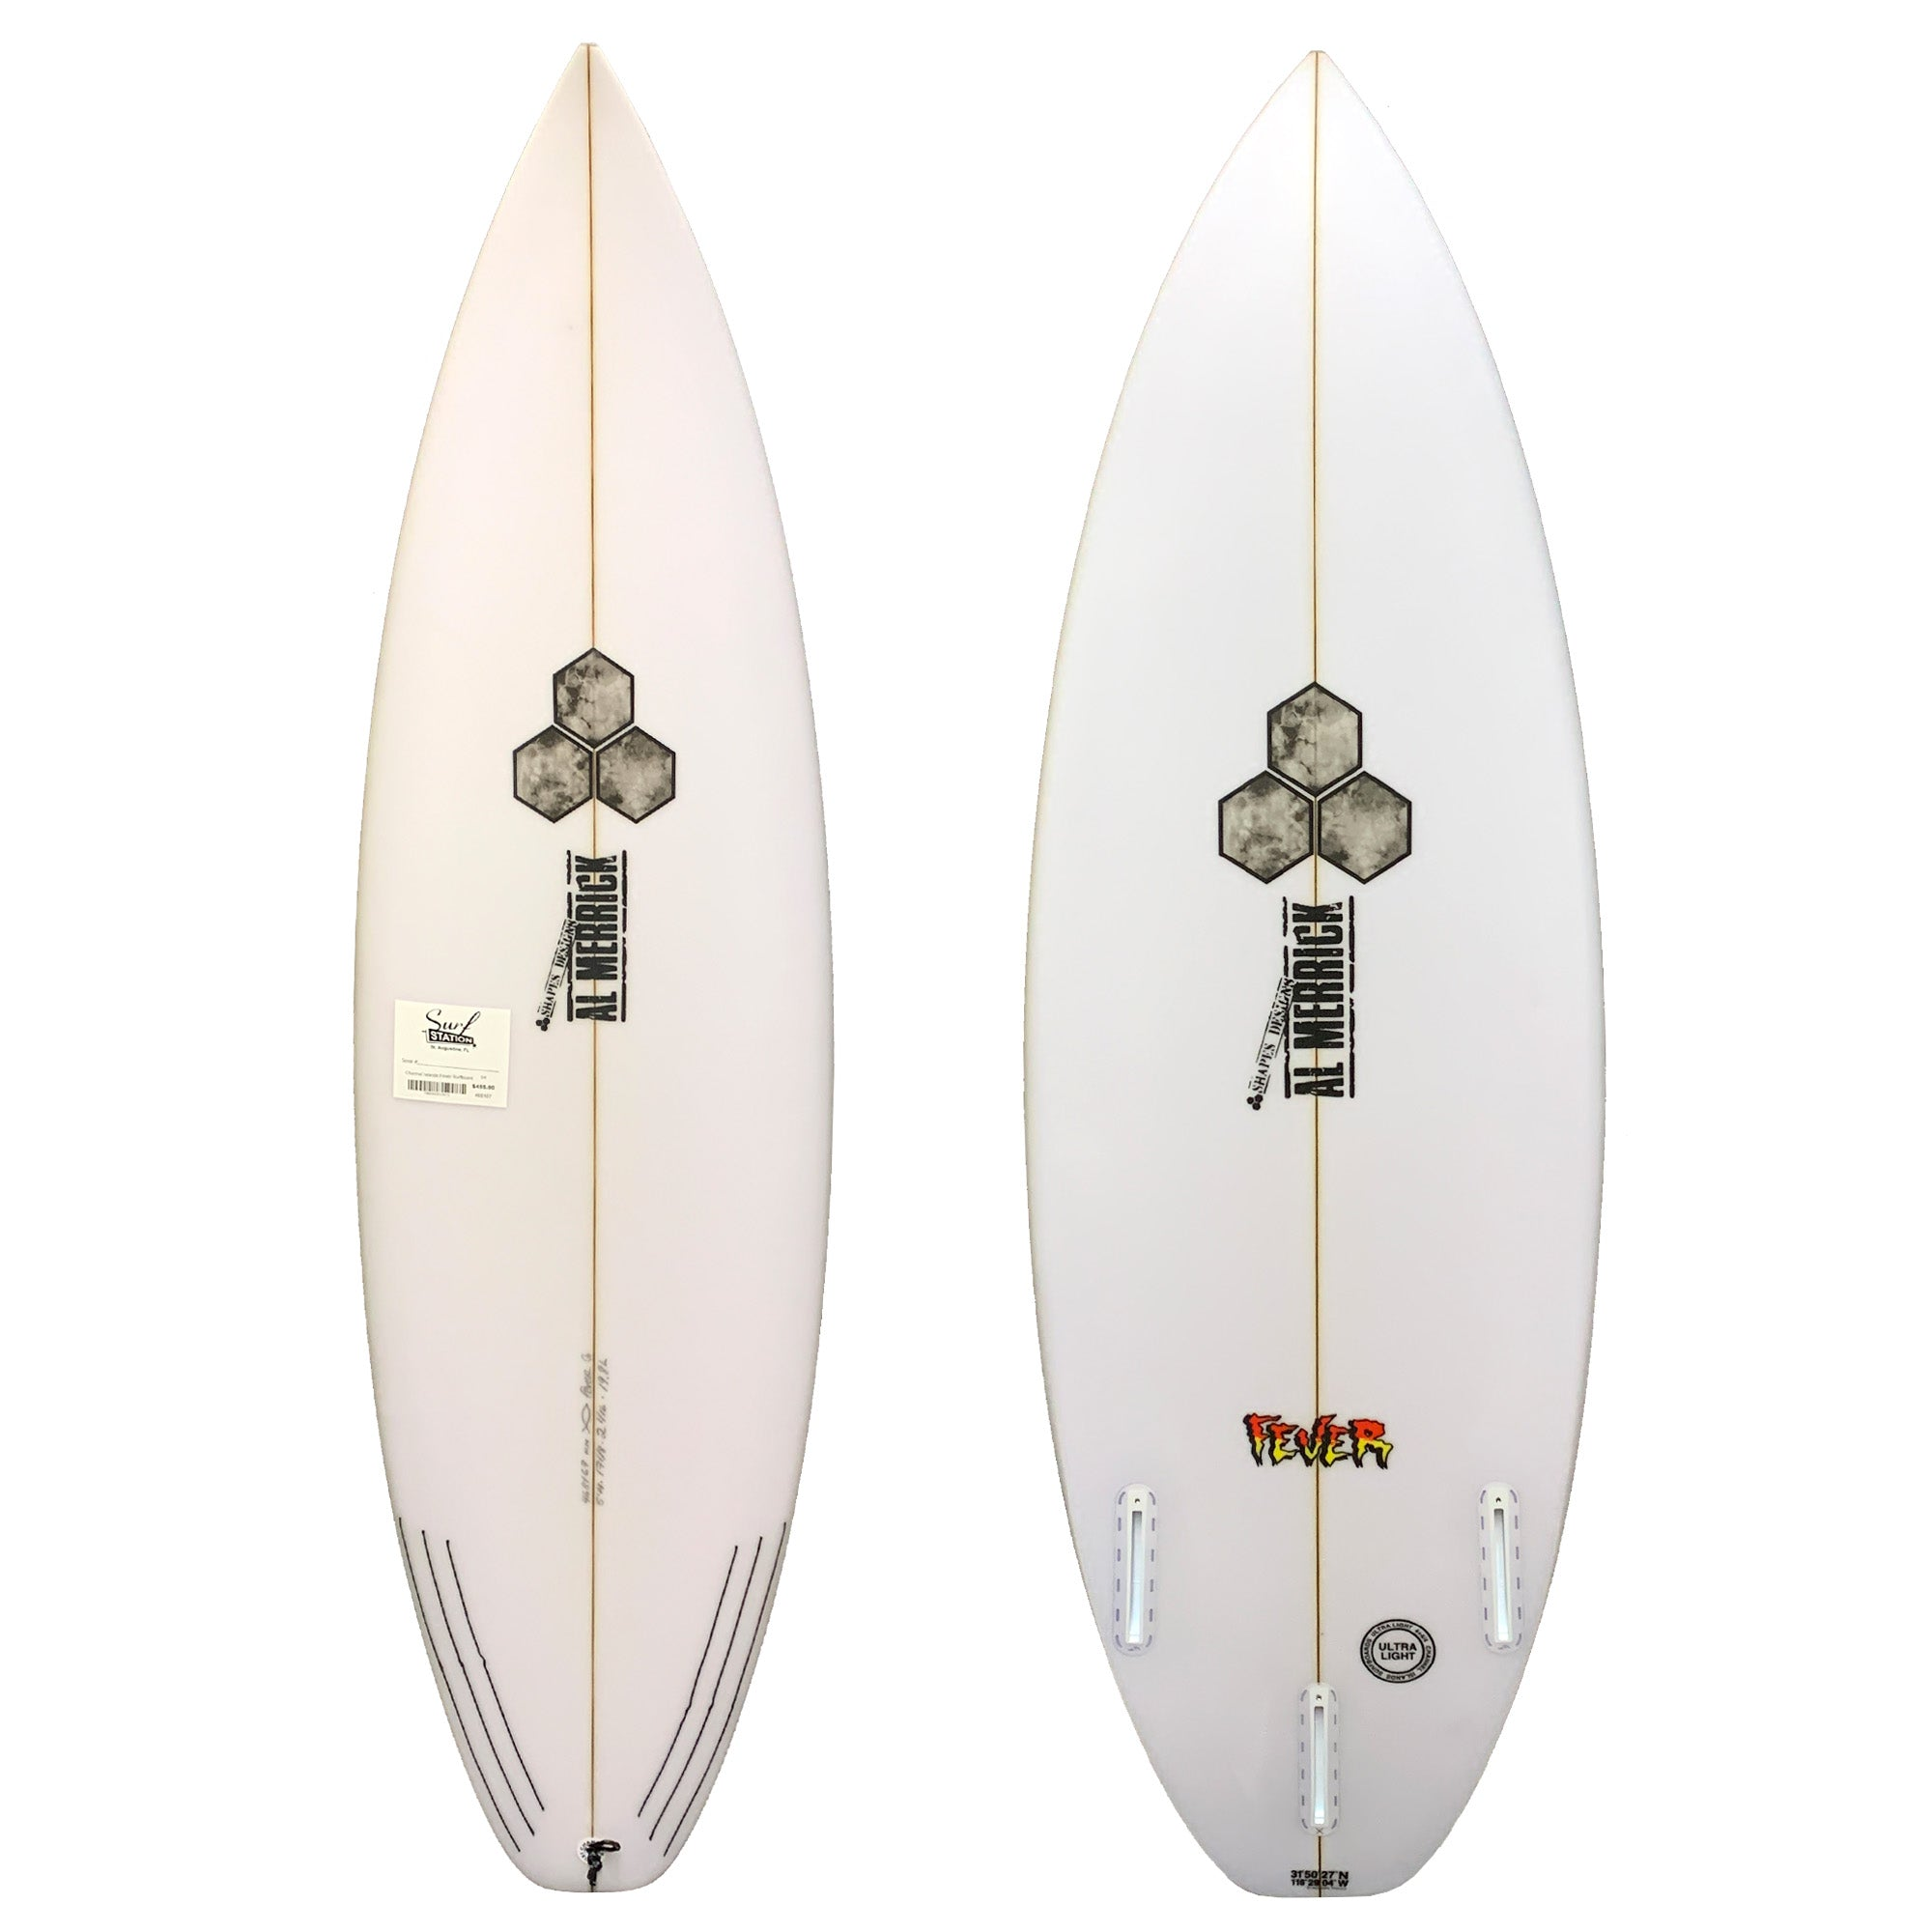 Channel Islands Fever Grom Surfboard - Futures